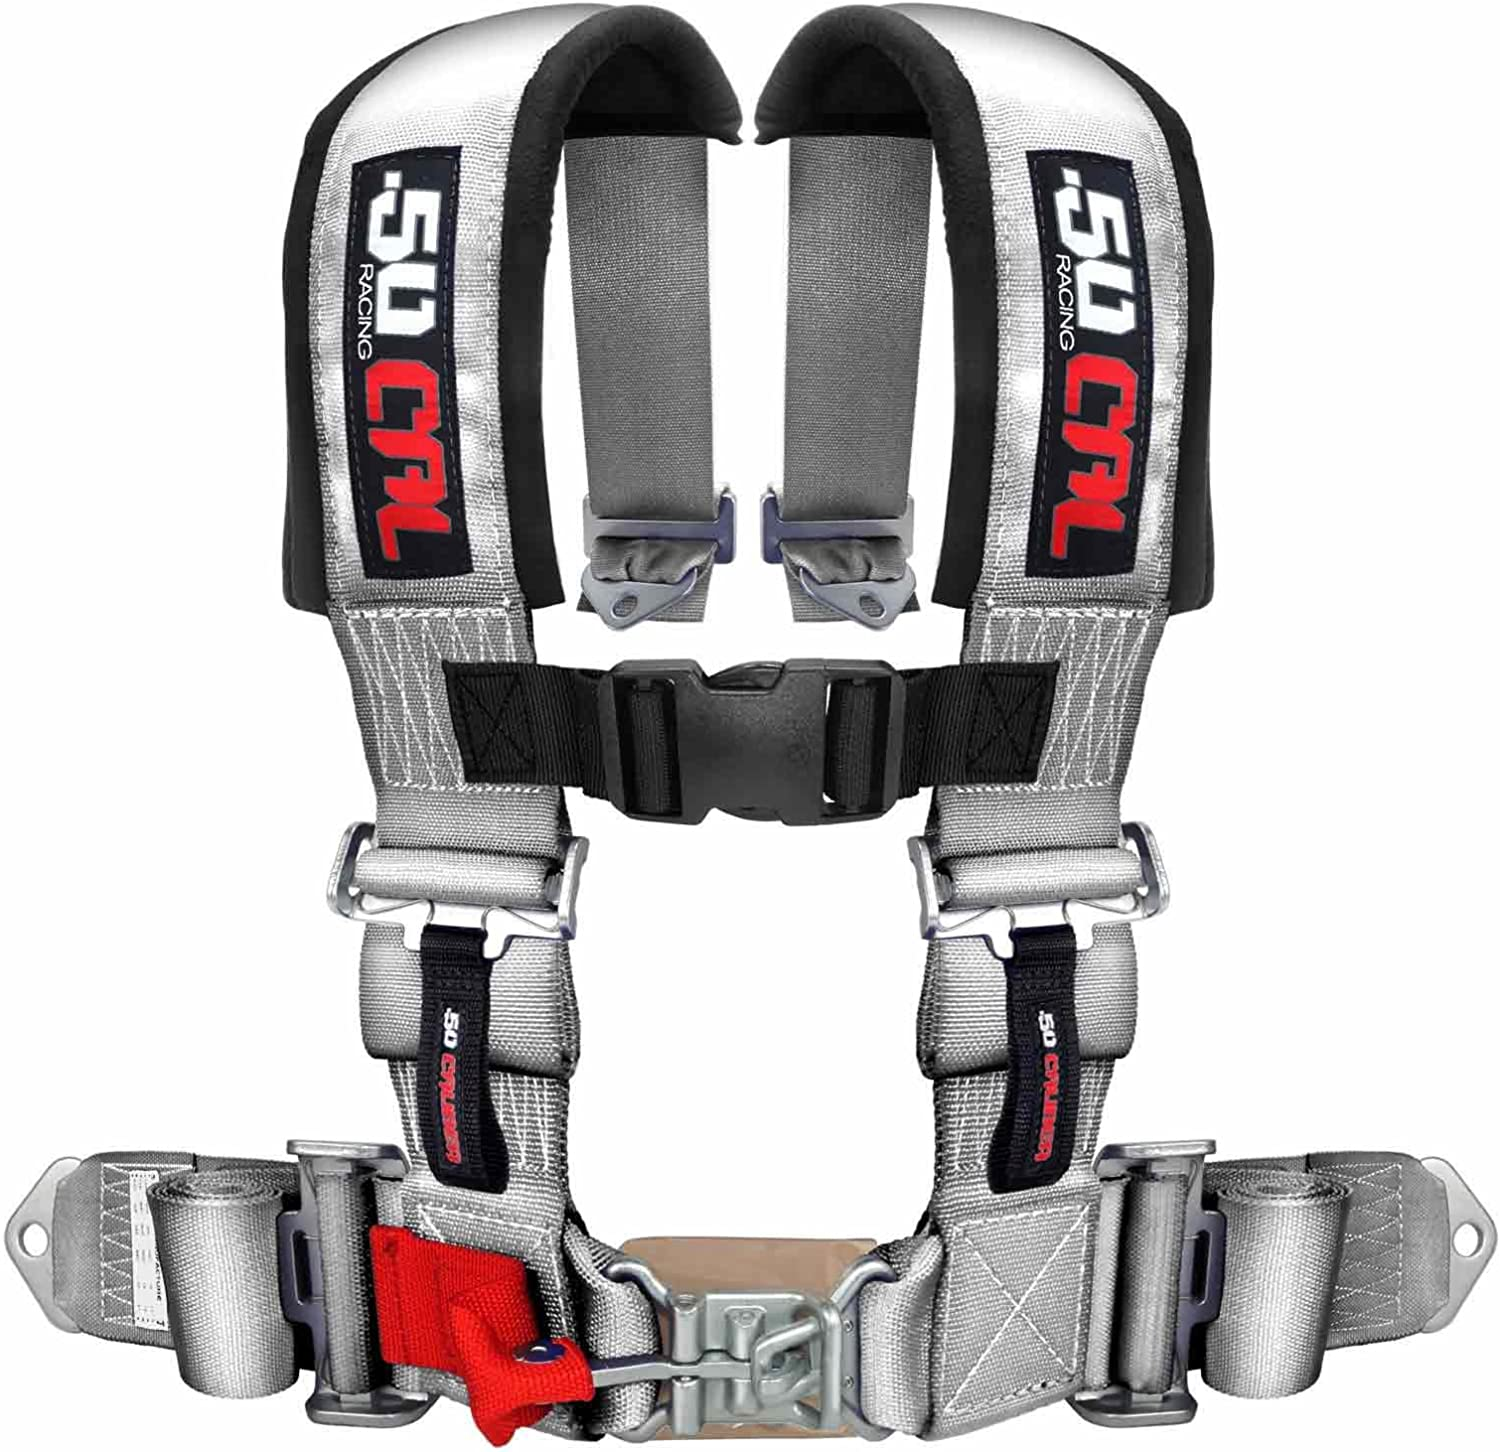 Trucks 6006 UTV and Off Road Vehicles 50 Caliber Racing Silver 4 Point Harness with 3 Straps for Cars